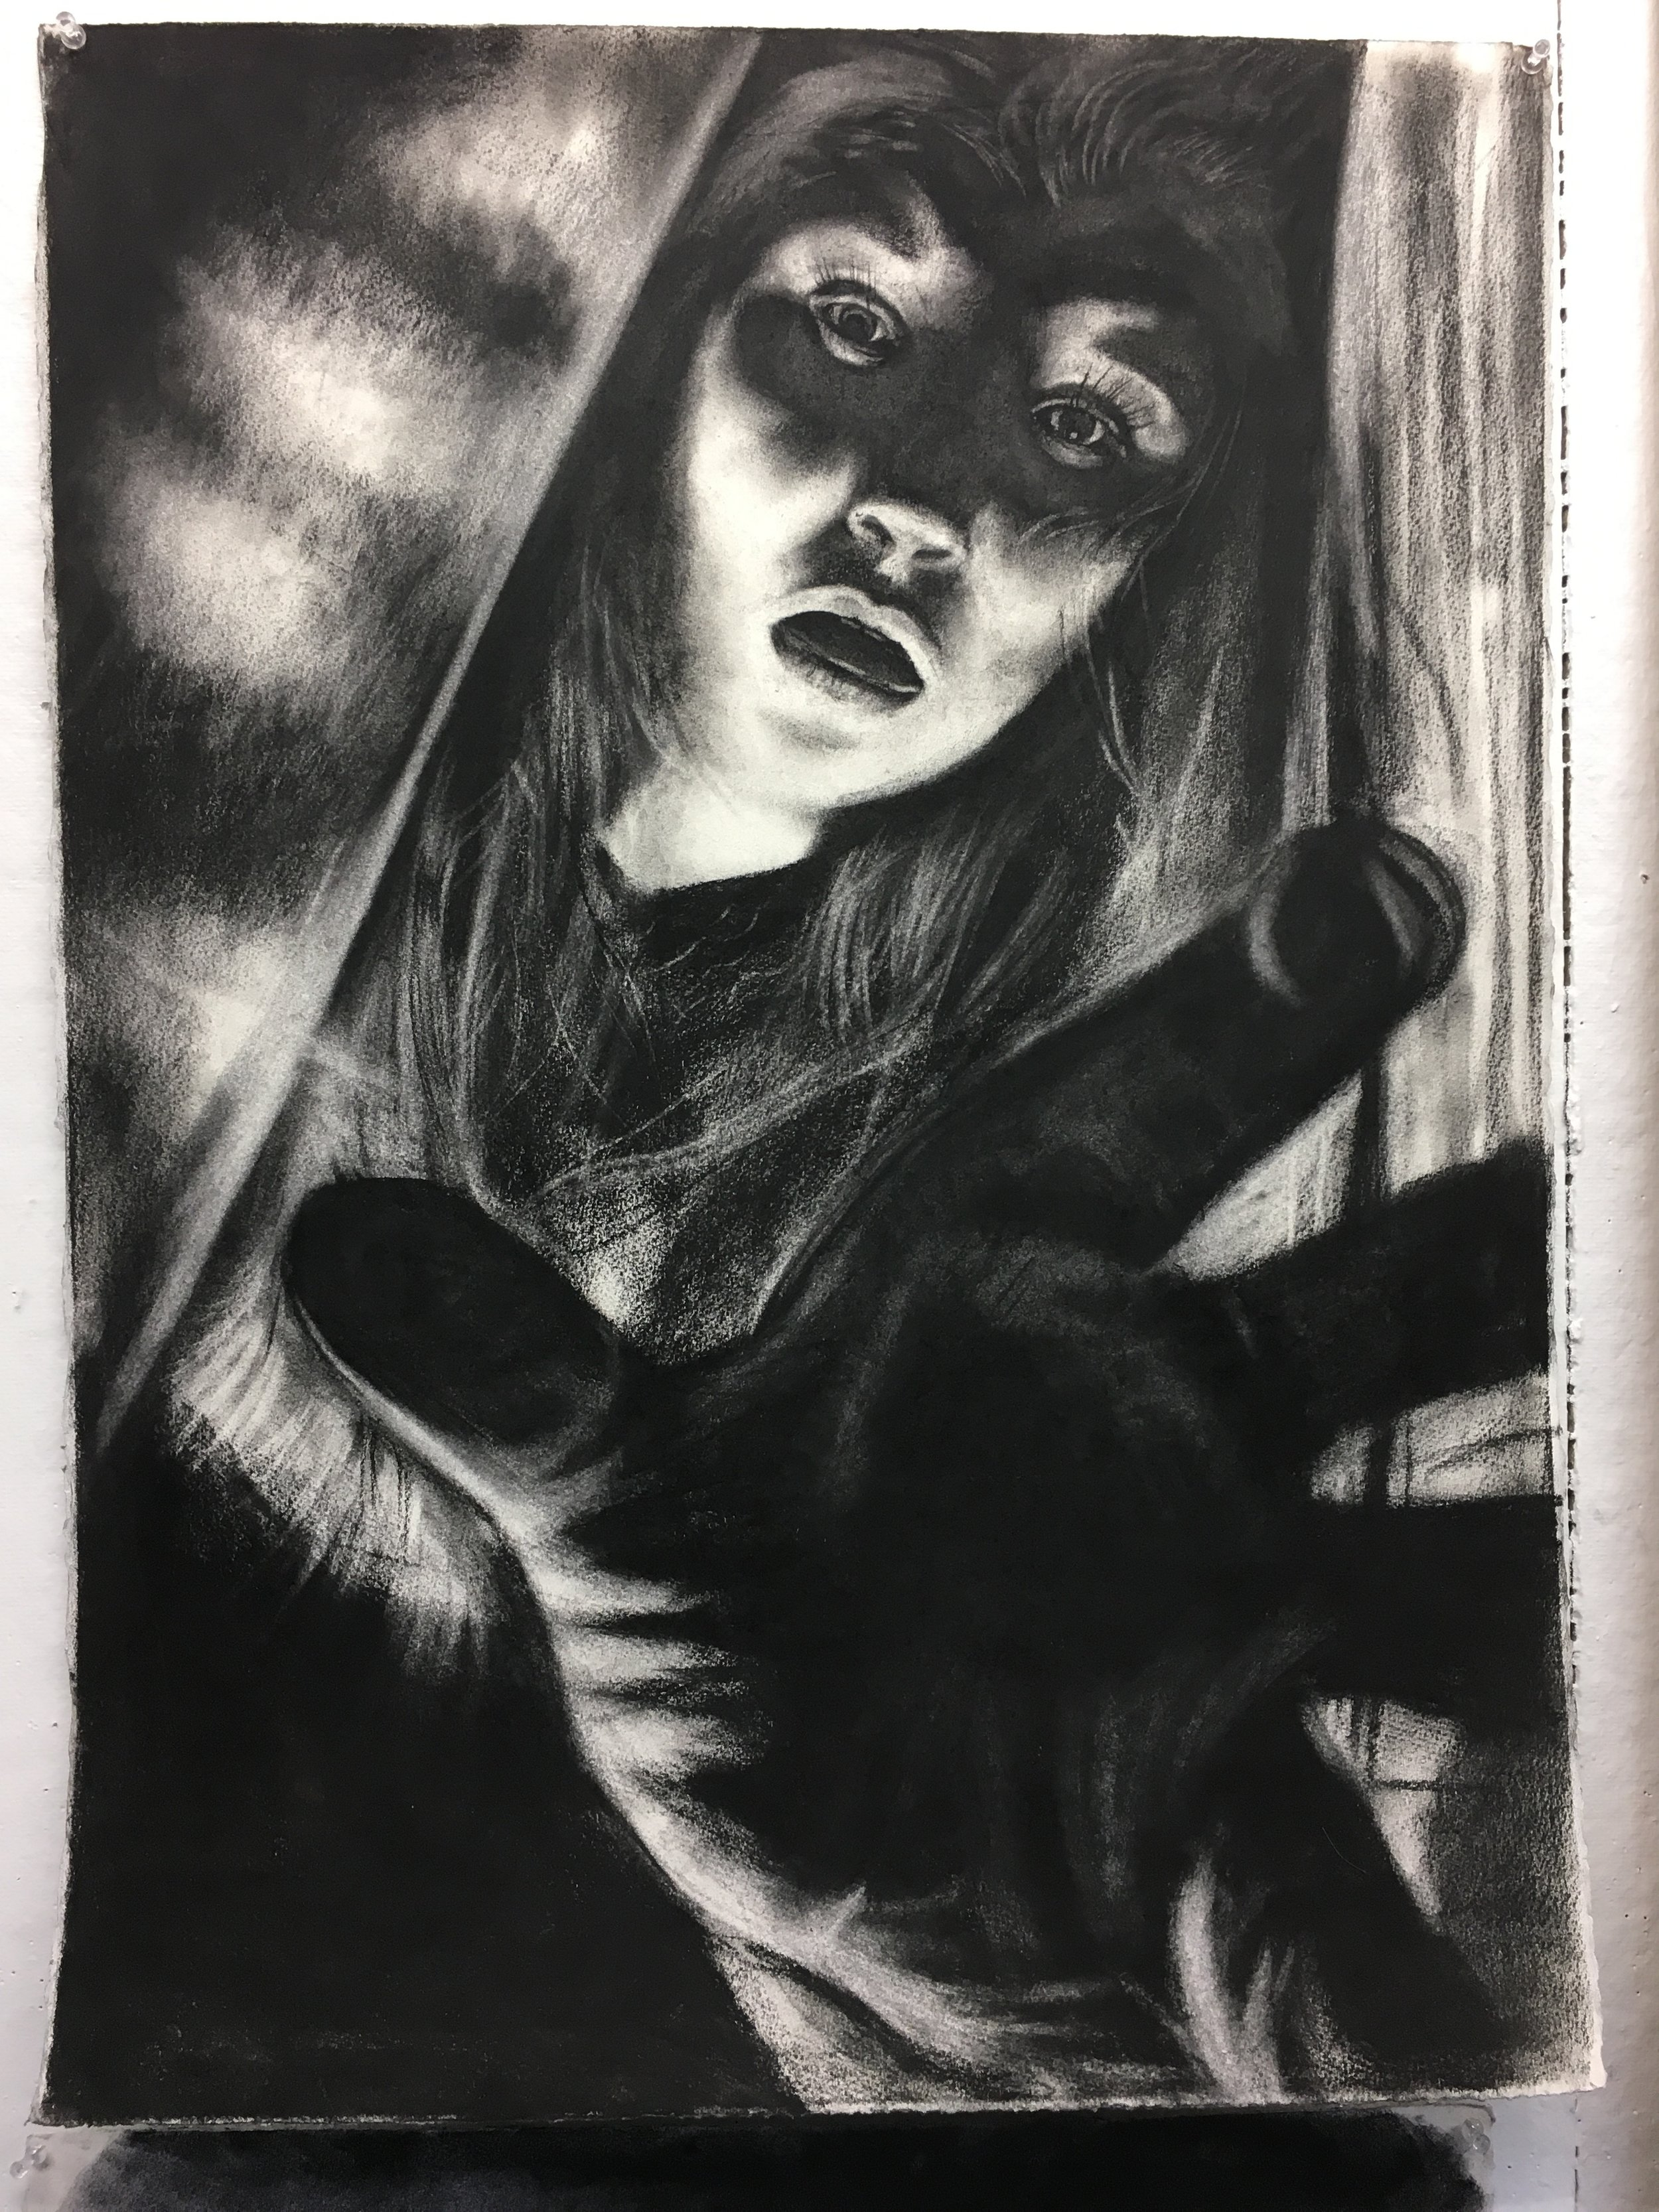 Large scale self-portrait in charcoal